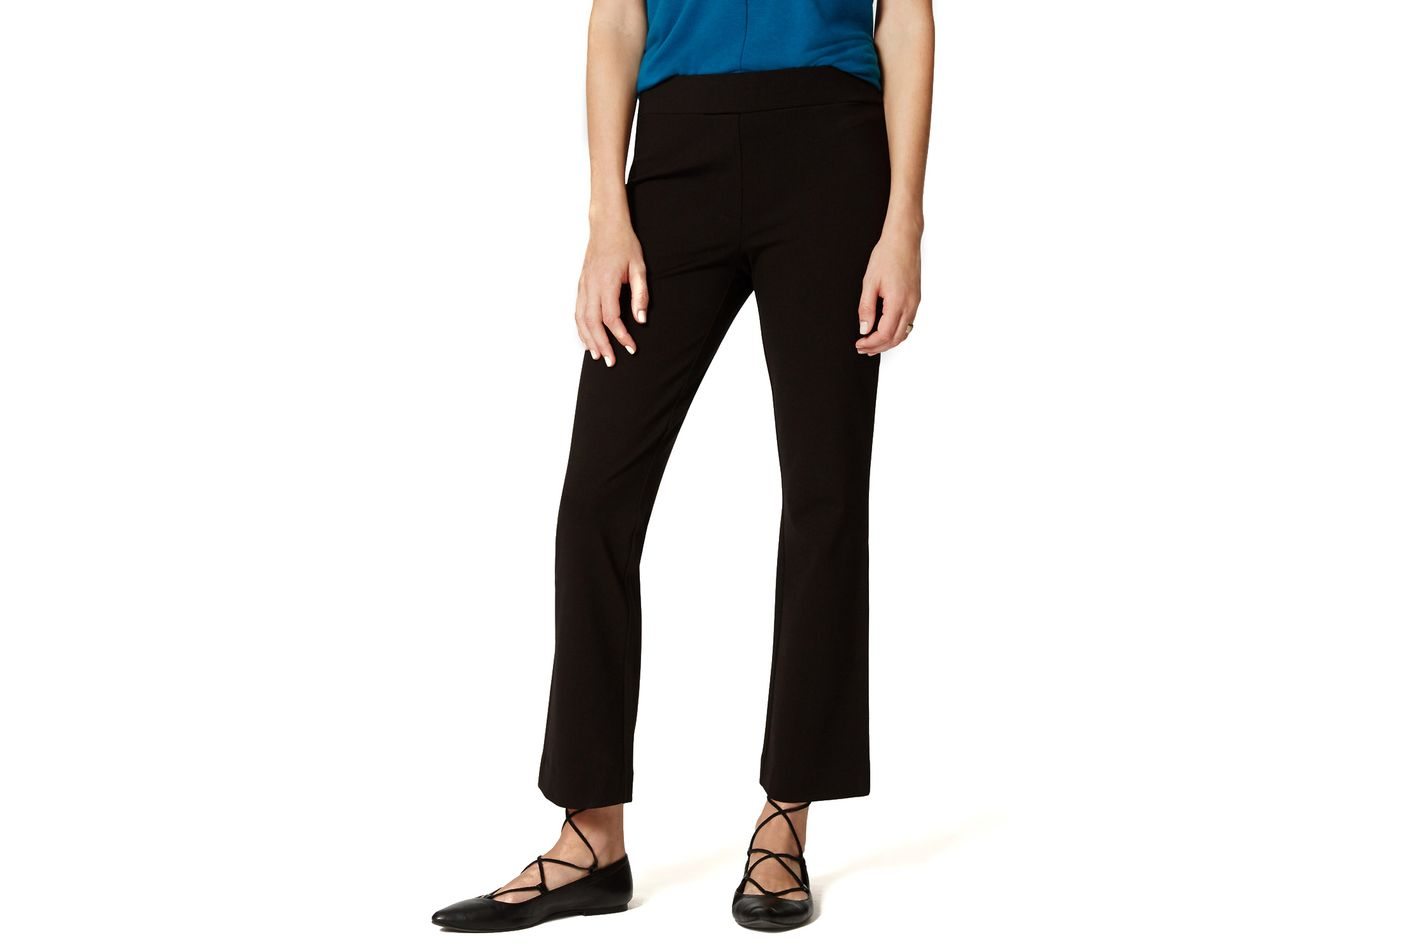 The Best Work Pants for Women Are From Avenue Montaigne